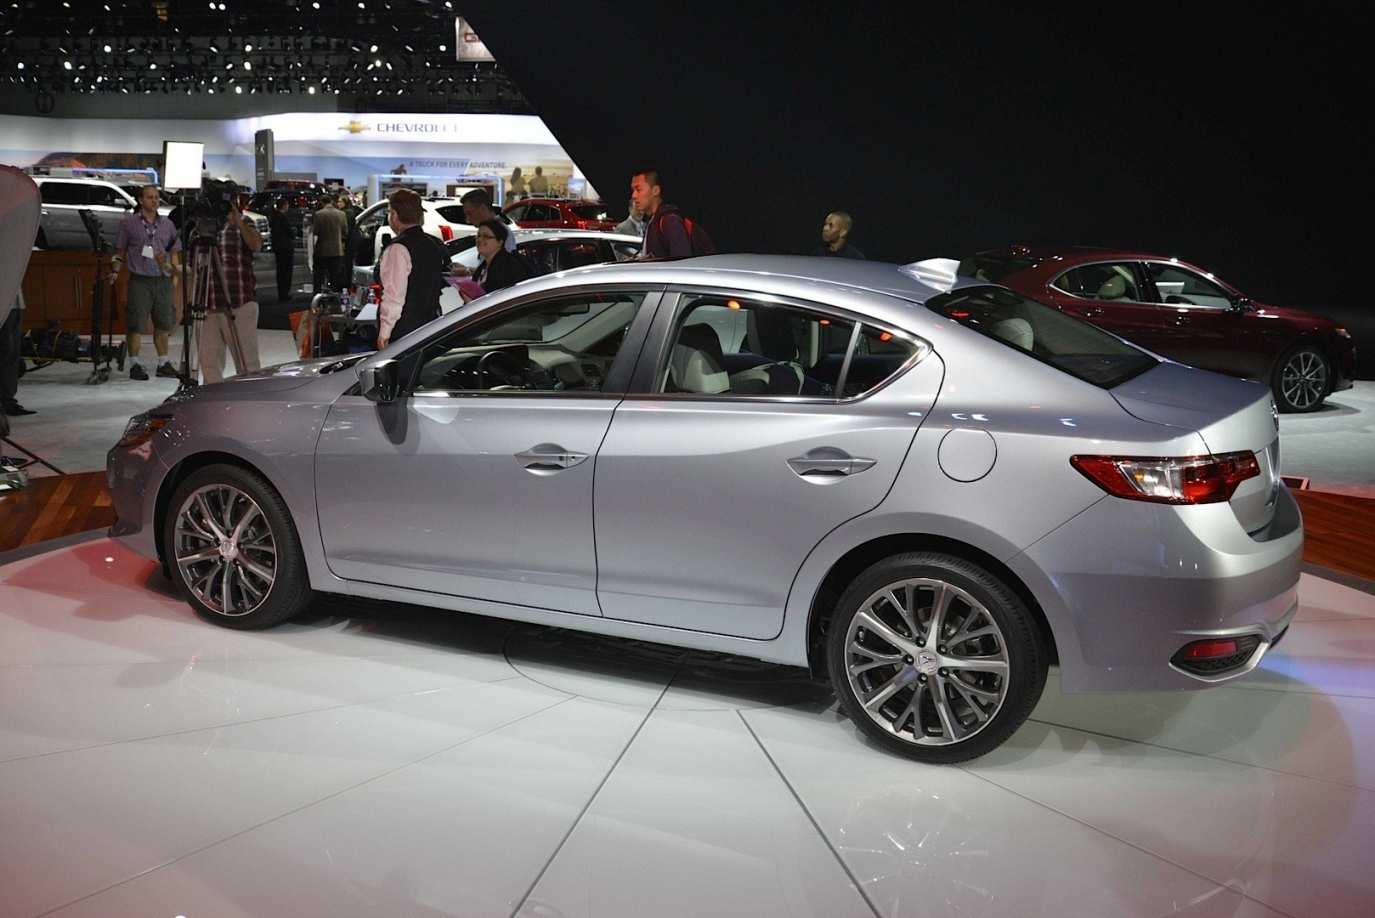 21 Great 2019 Acura Ilx Redesign Images for 2019 Acura Ilx Redesign